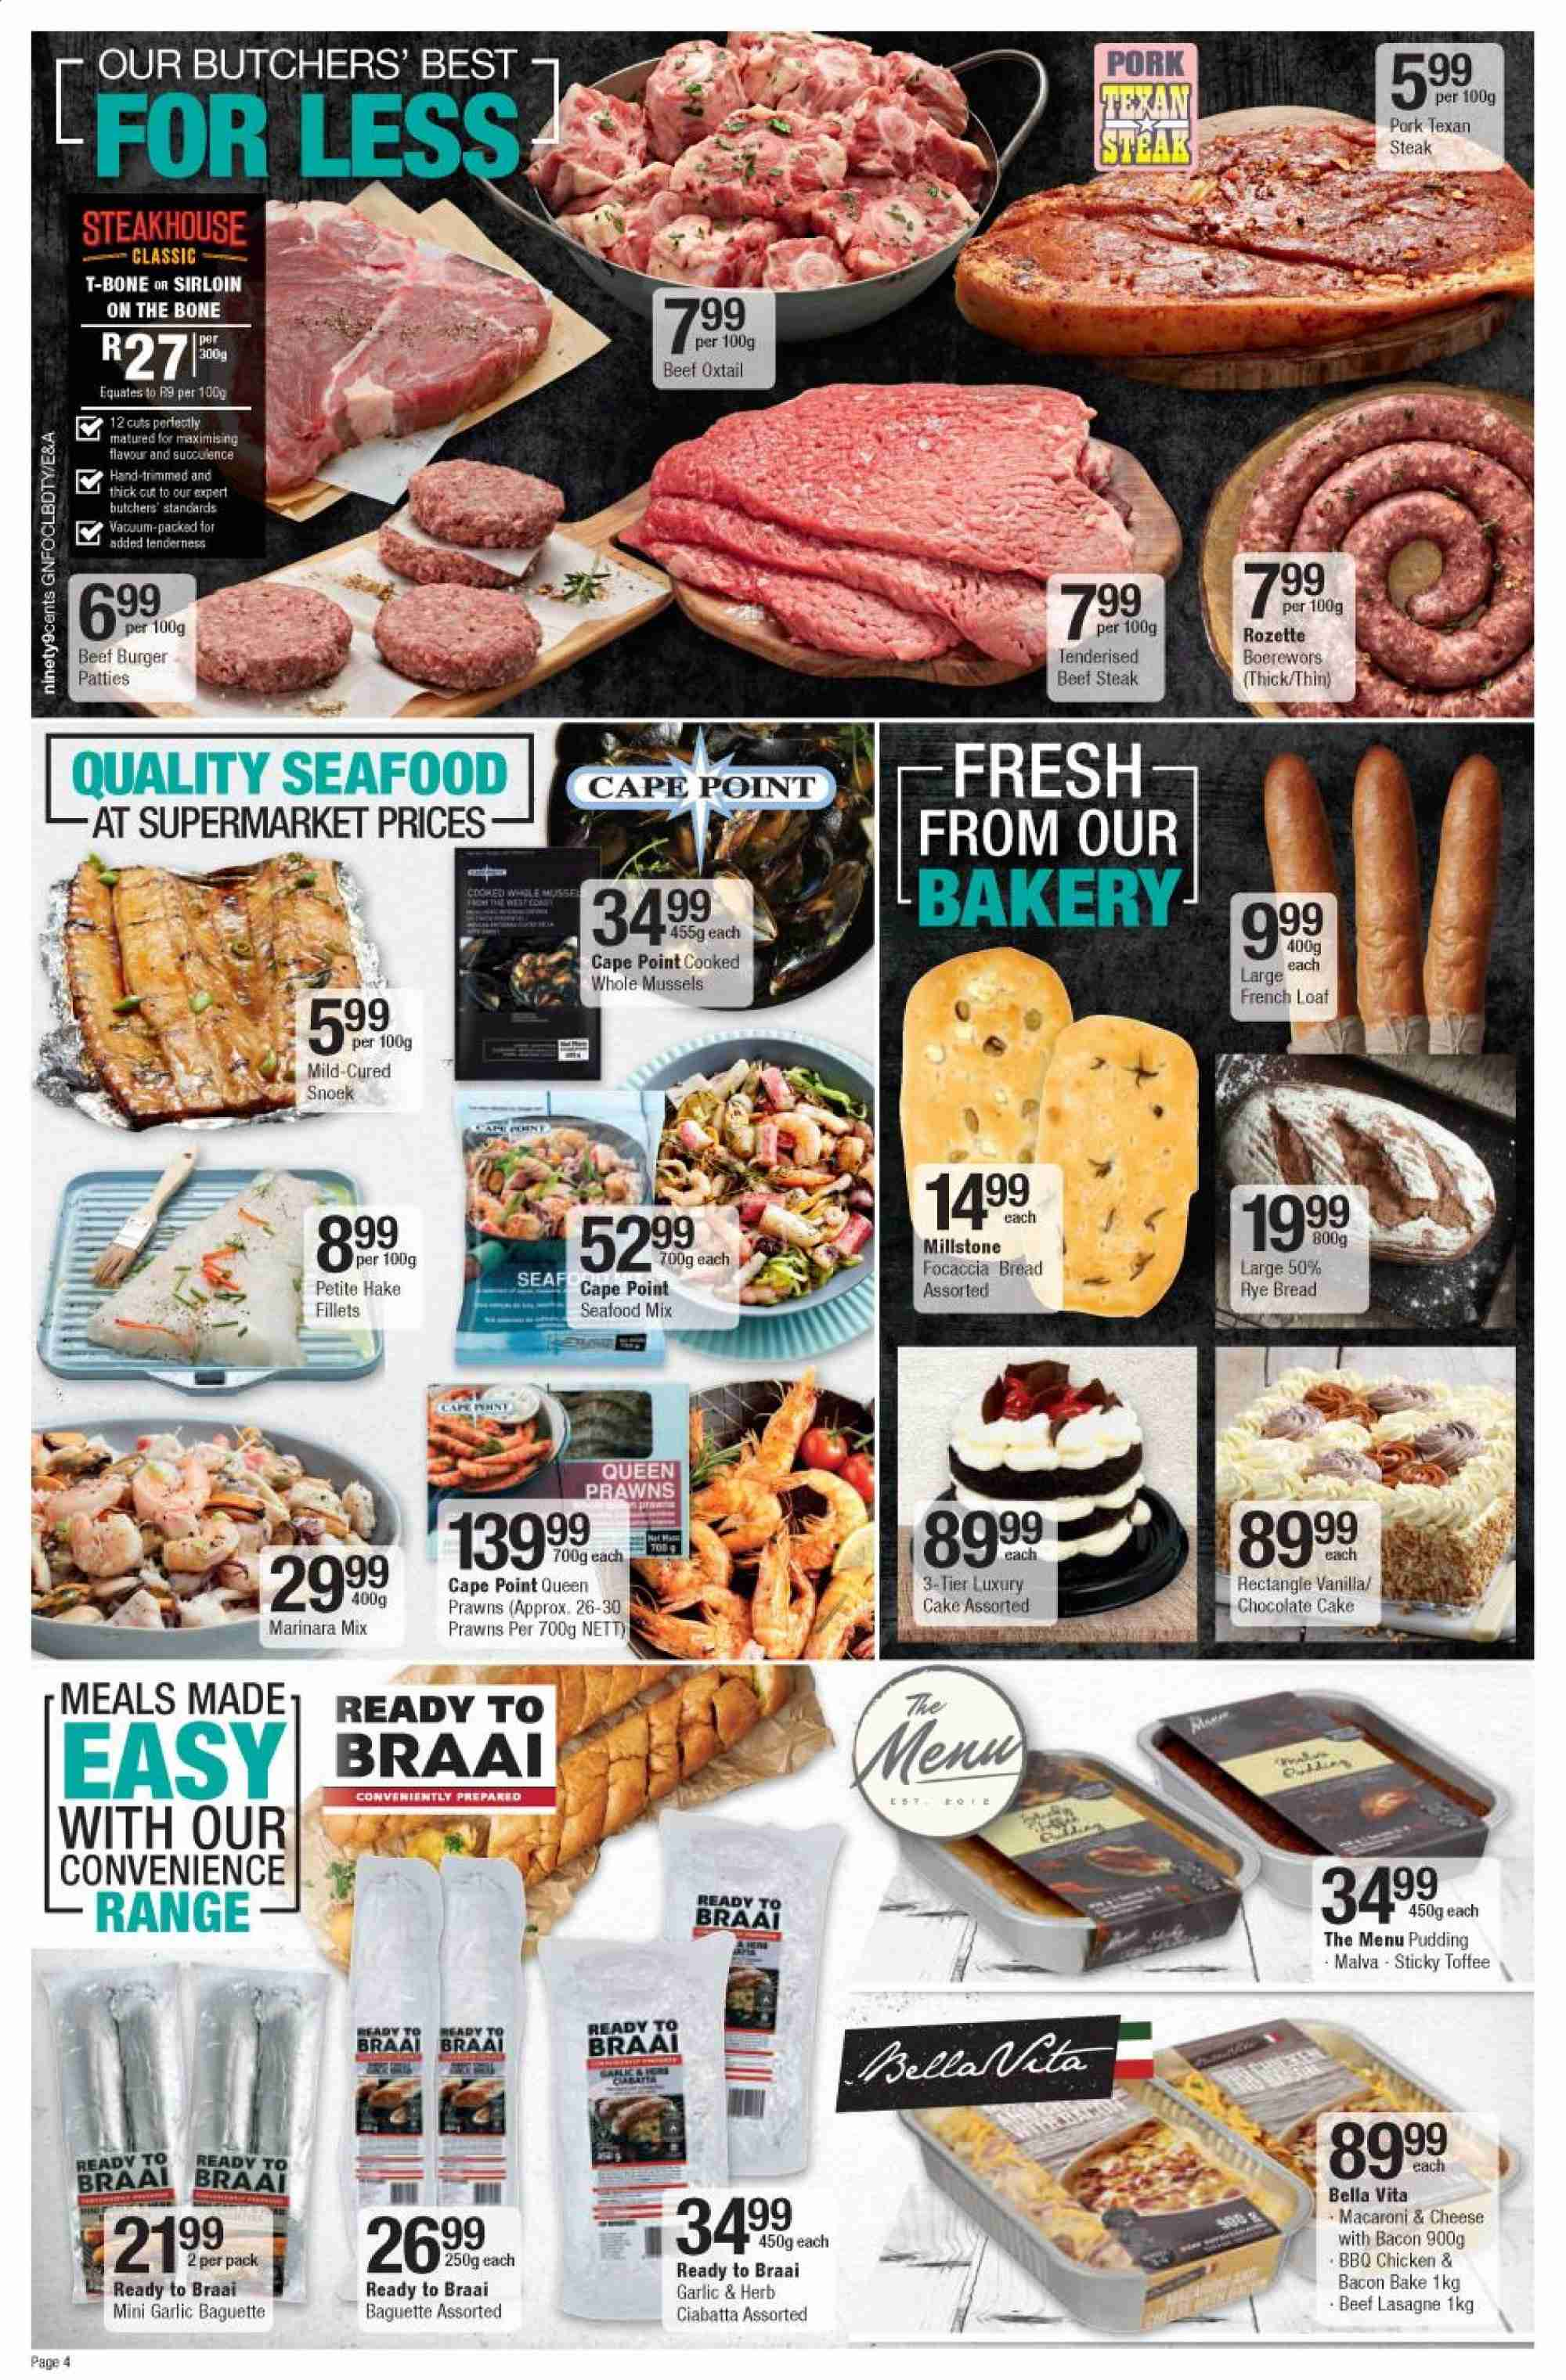 Checkers special - 05.22.2019 - 06.09.2019 - Sales products - bacon, baguette, beef meat, beef steak, bra, bread, ciabatta, garlic, lasagne, macaroni & cheese, mussels, vacuum, pork meat, prawns, pudding, chicken, oxtail, chocolate, steak, macaroni, burger, seafood, herbs, cheese, hake, cake, toffee. Page 4.